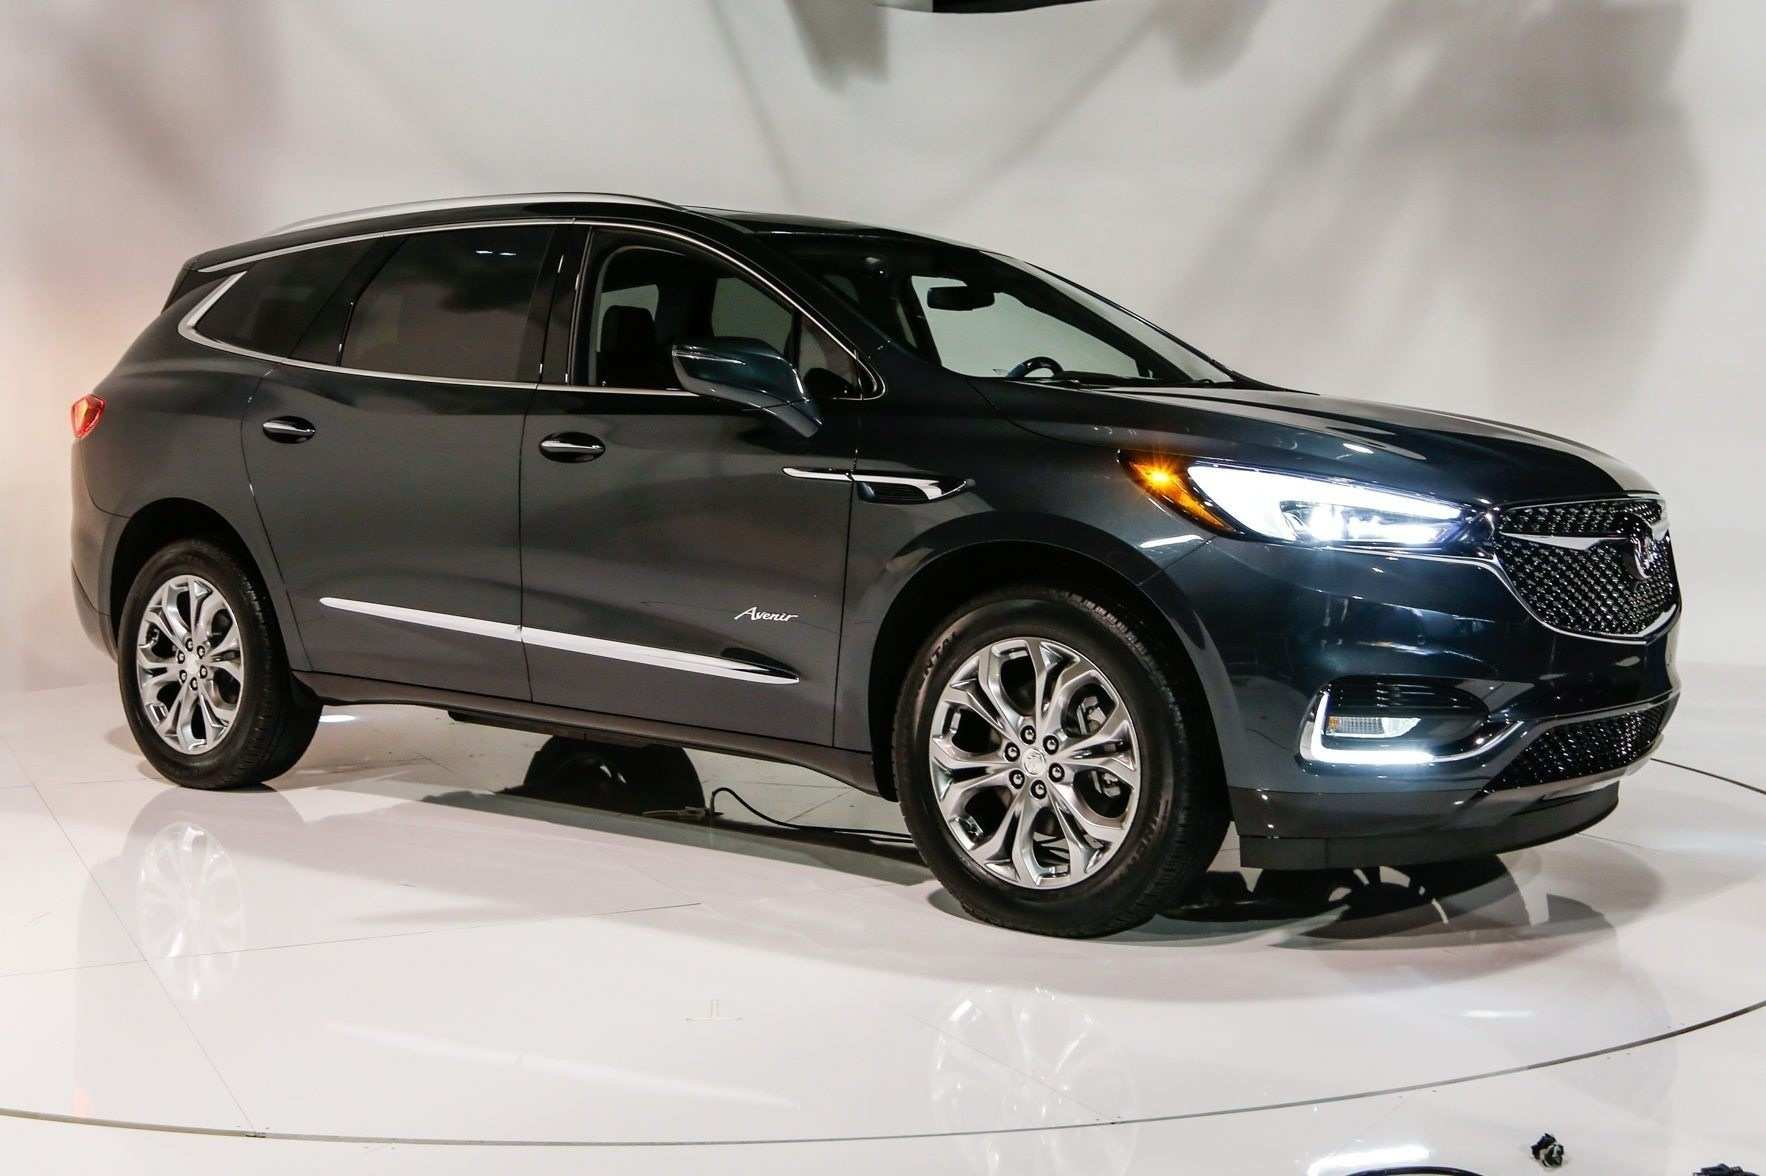 14 Great The 2019 Buick Enclave Wheelbase Review Concept with The 2019 Buick Enclave Wheelbase Review